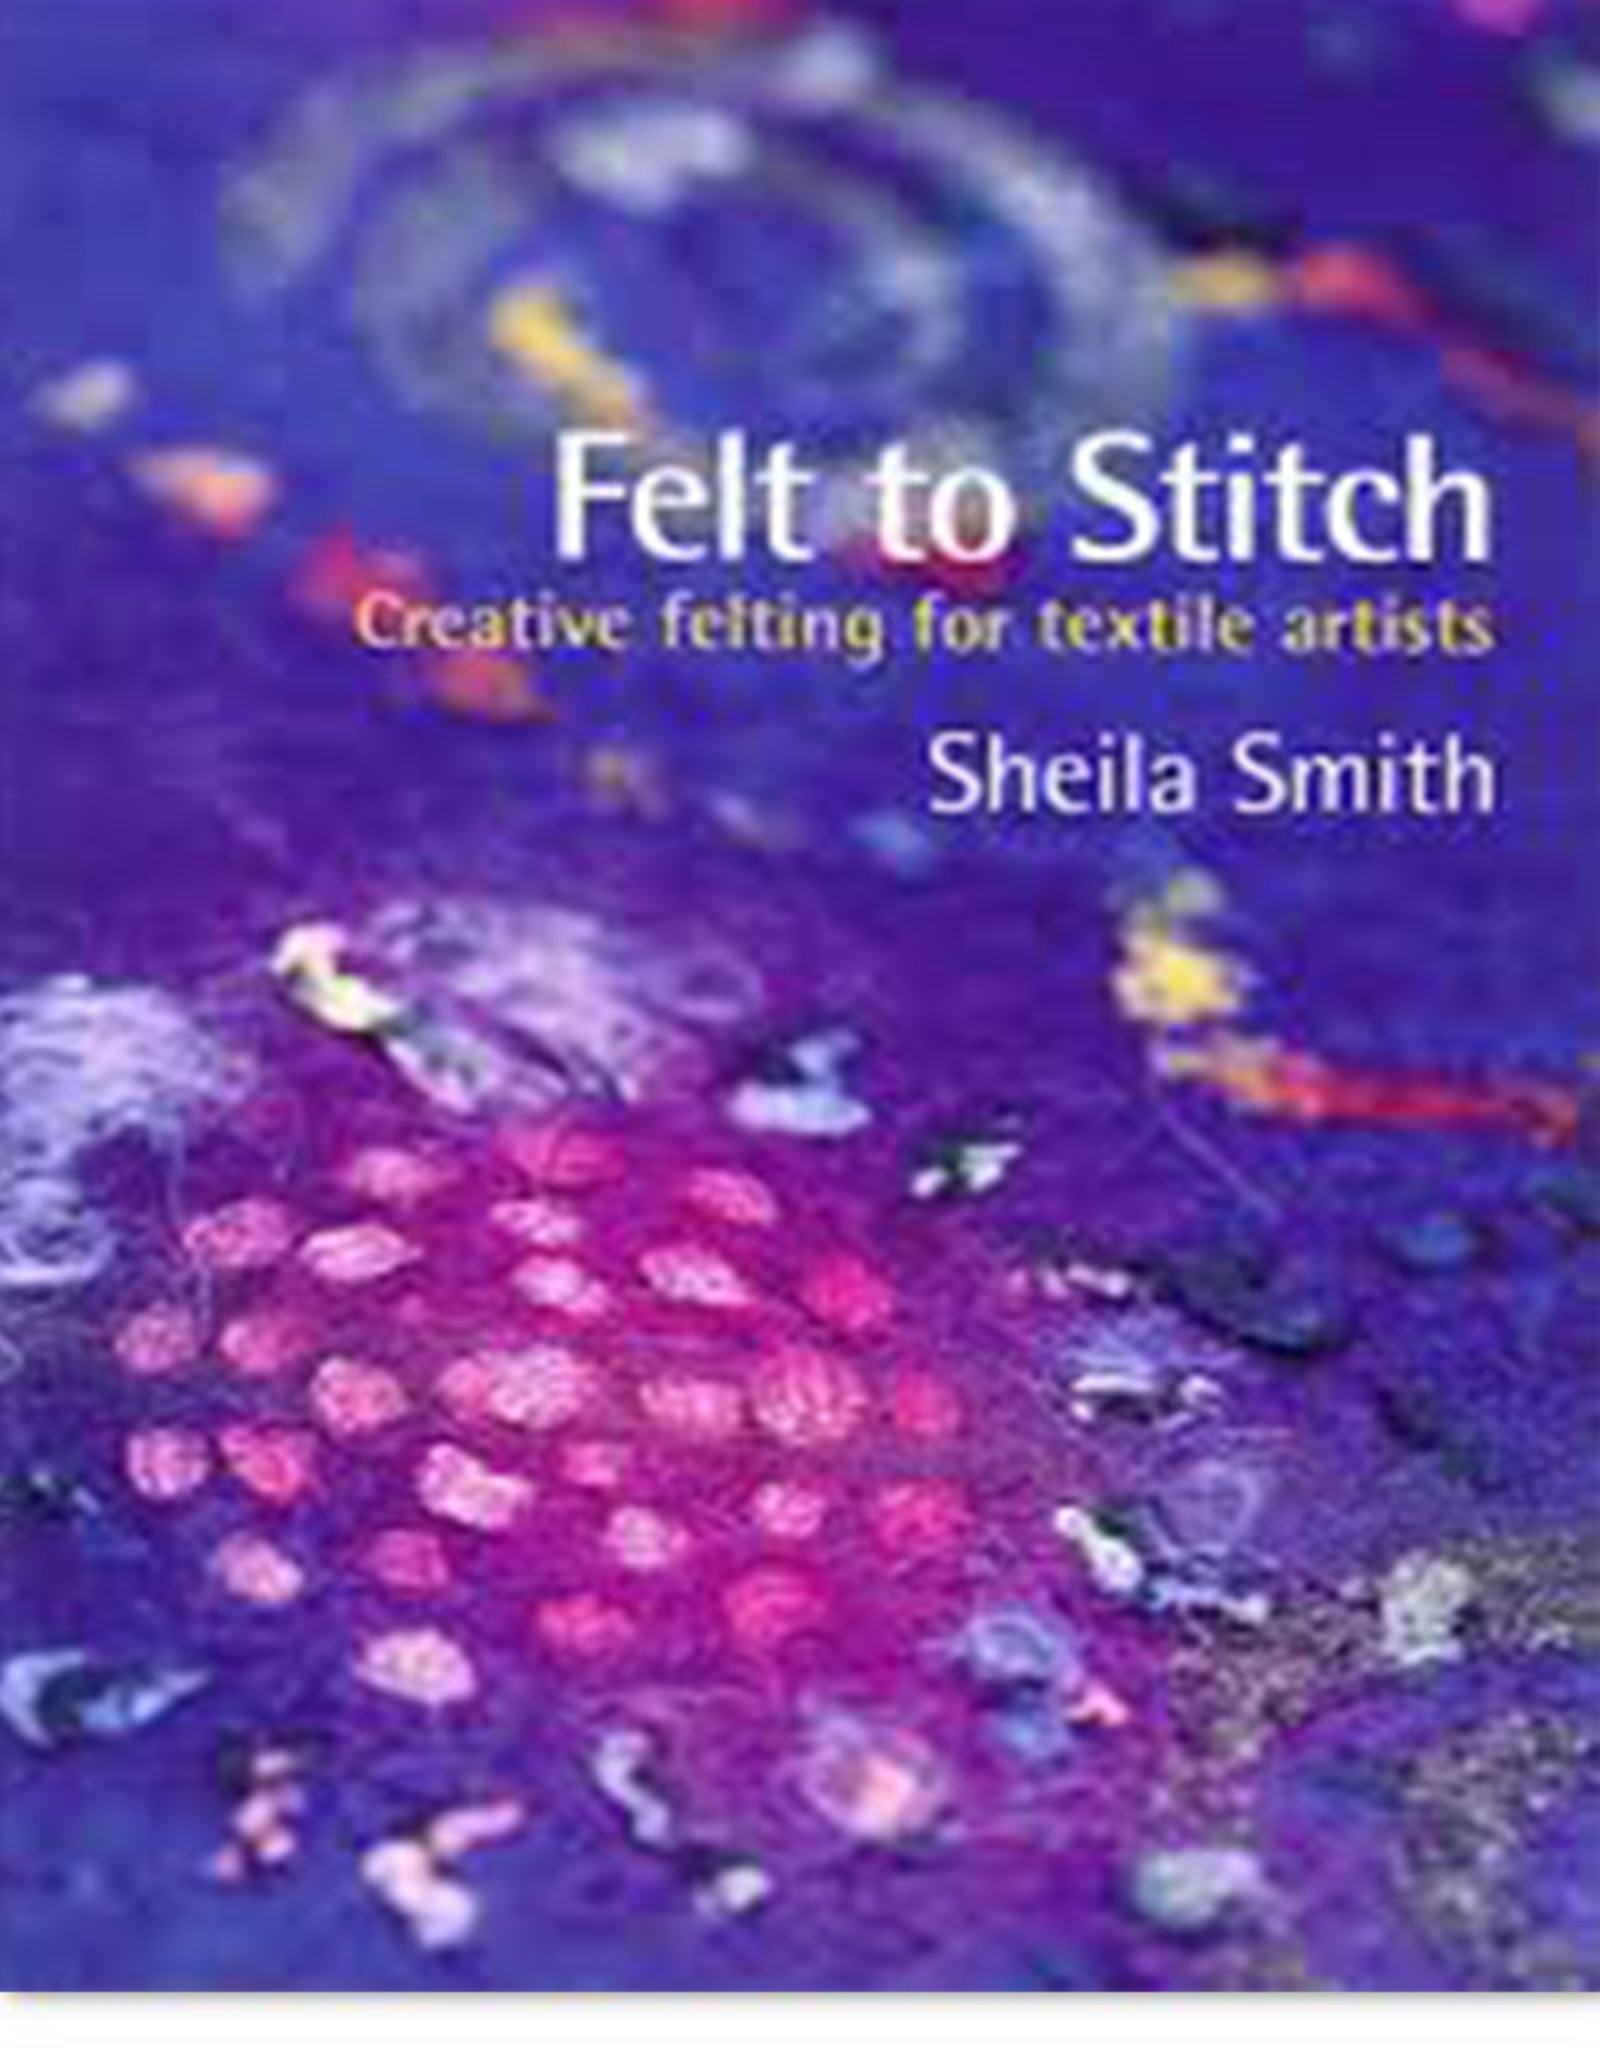 Felt to Stitch / Sheila Smith